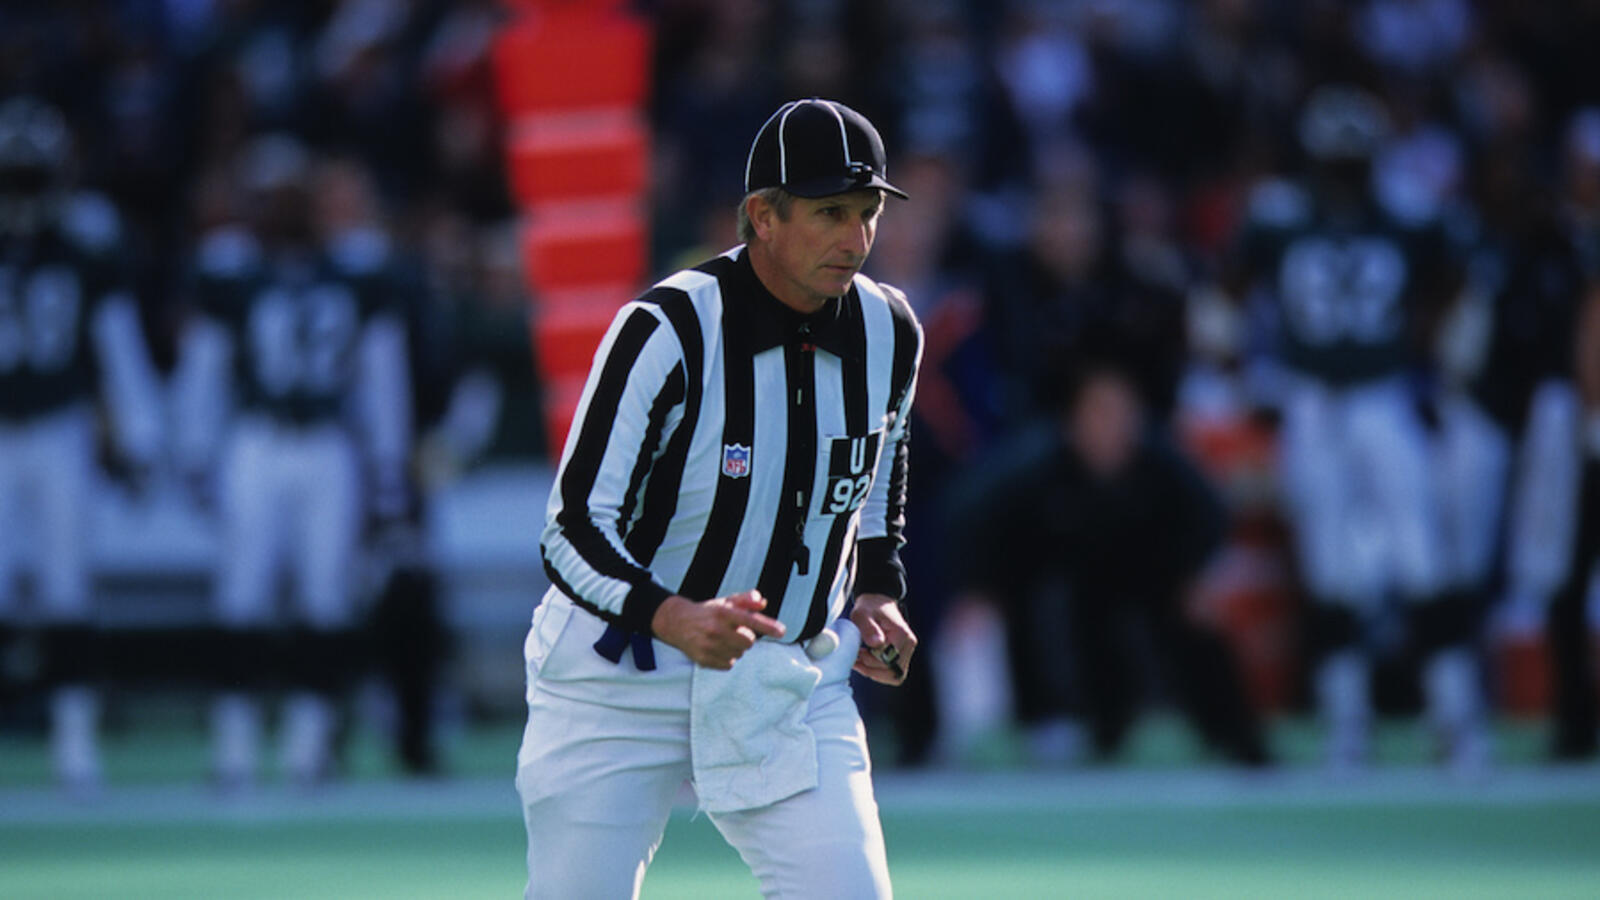 NFL Referee Carl Madsen Dies Hours After Working Chiefs-Titans Game